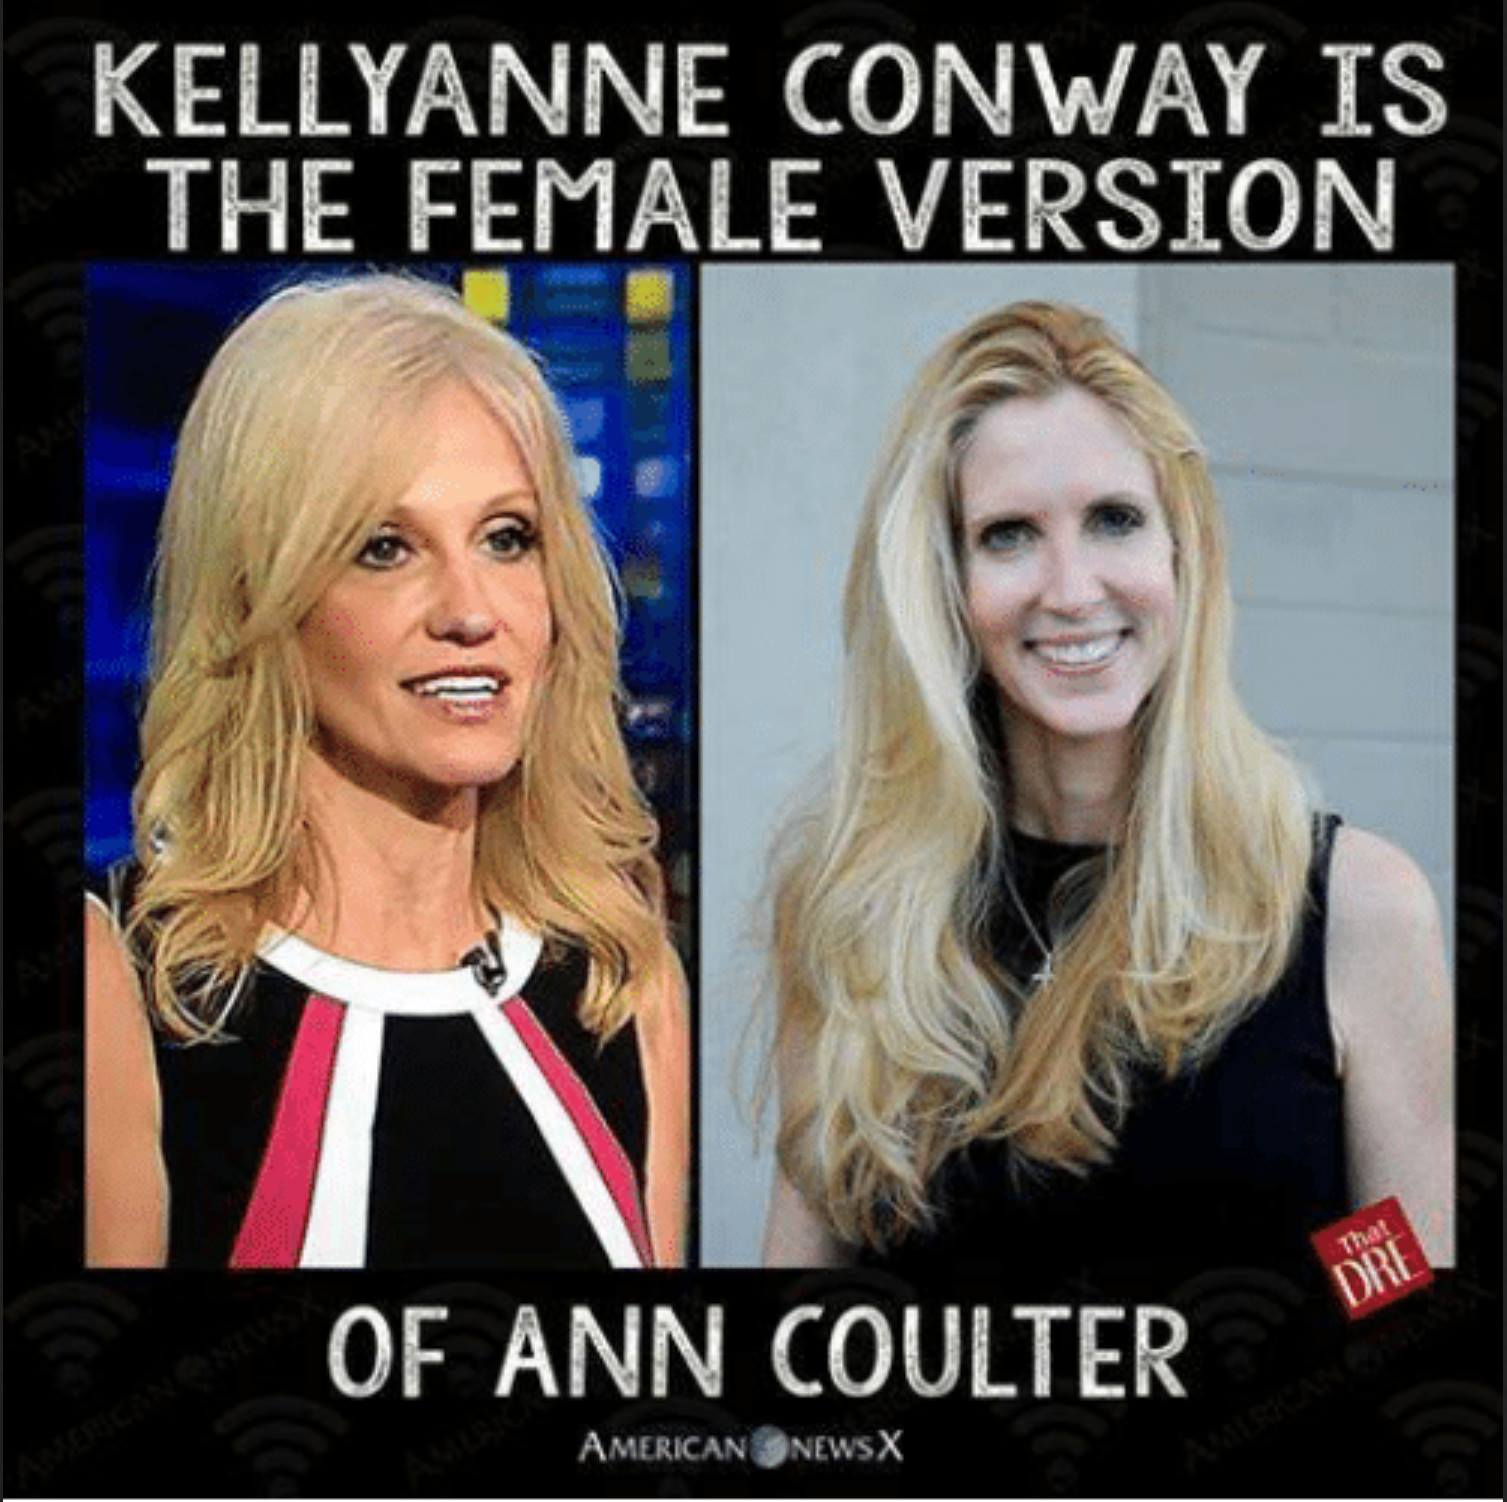 kellyanne conway is the female version of ann coulter